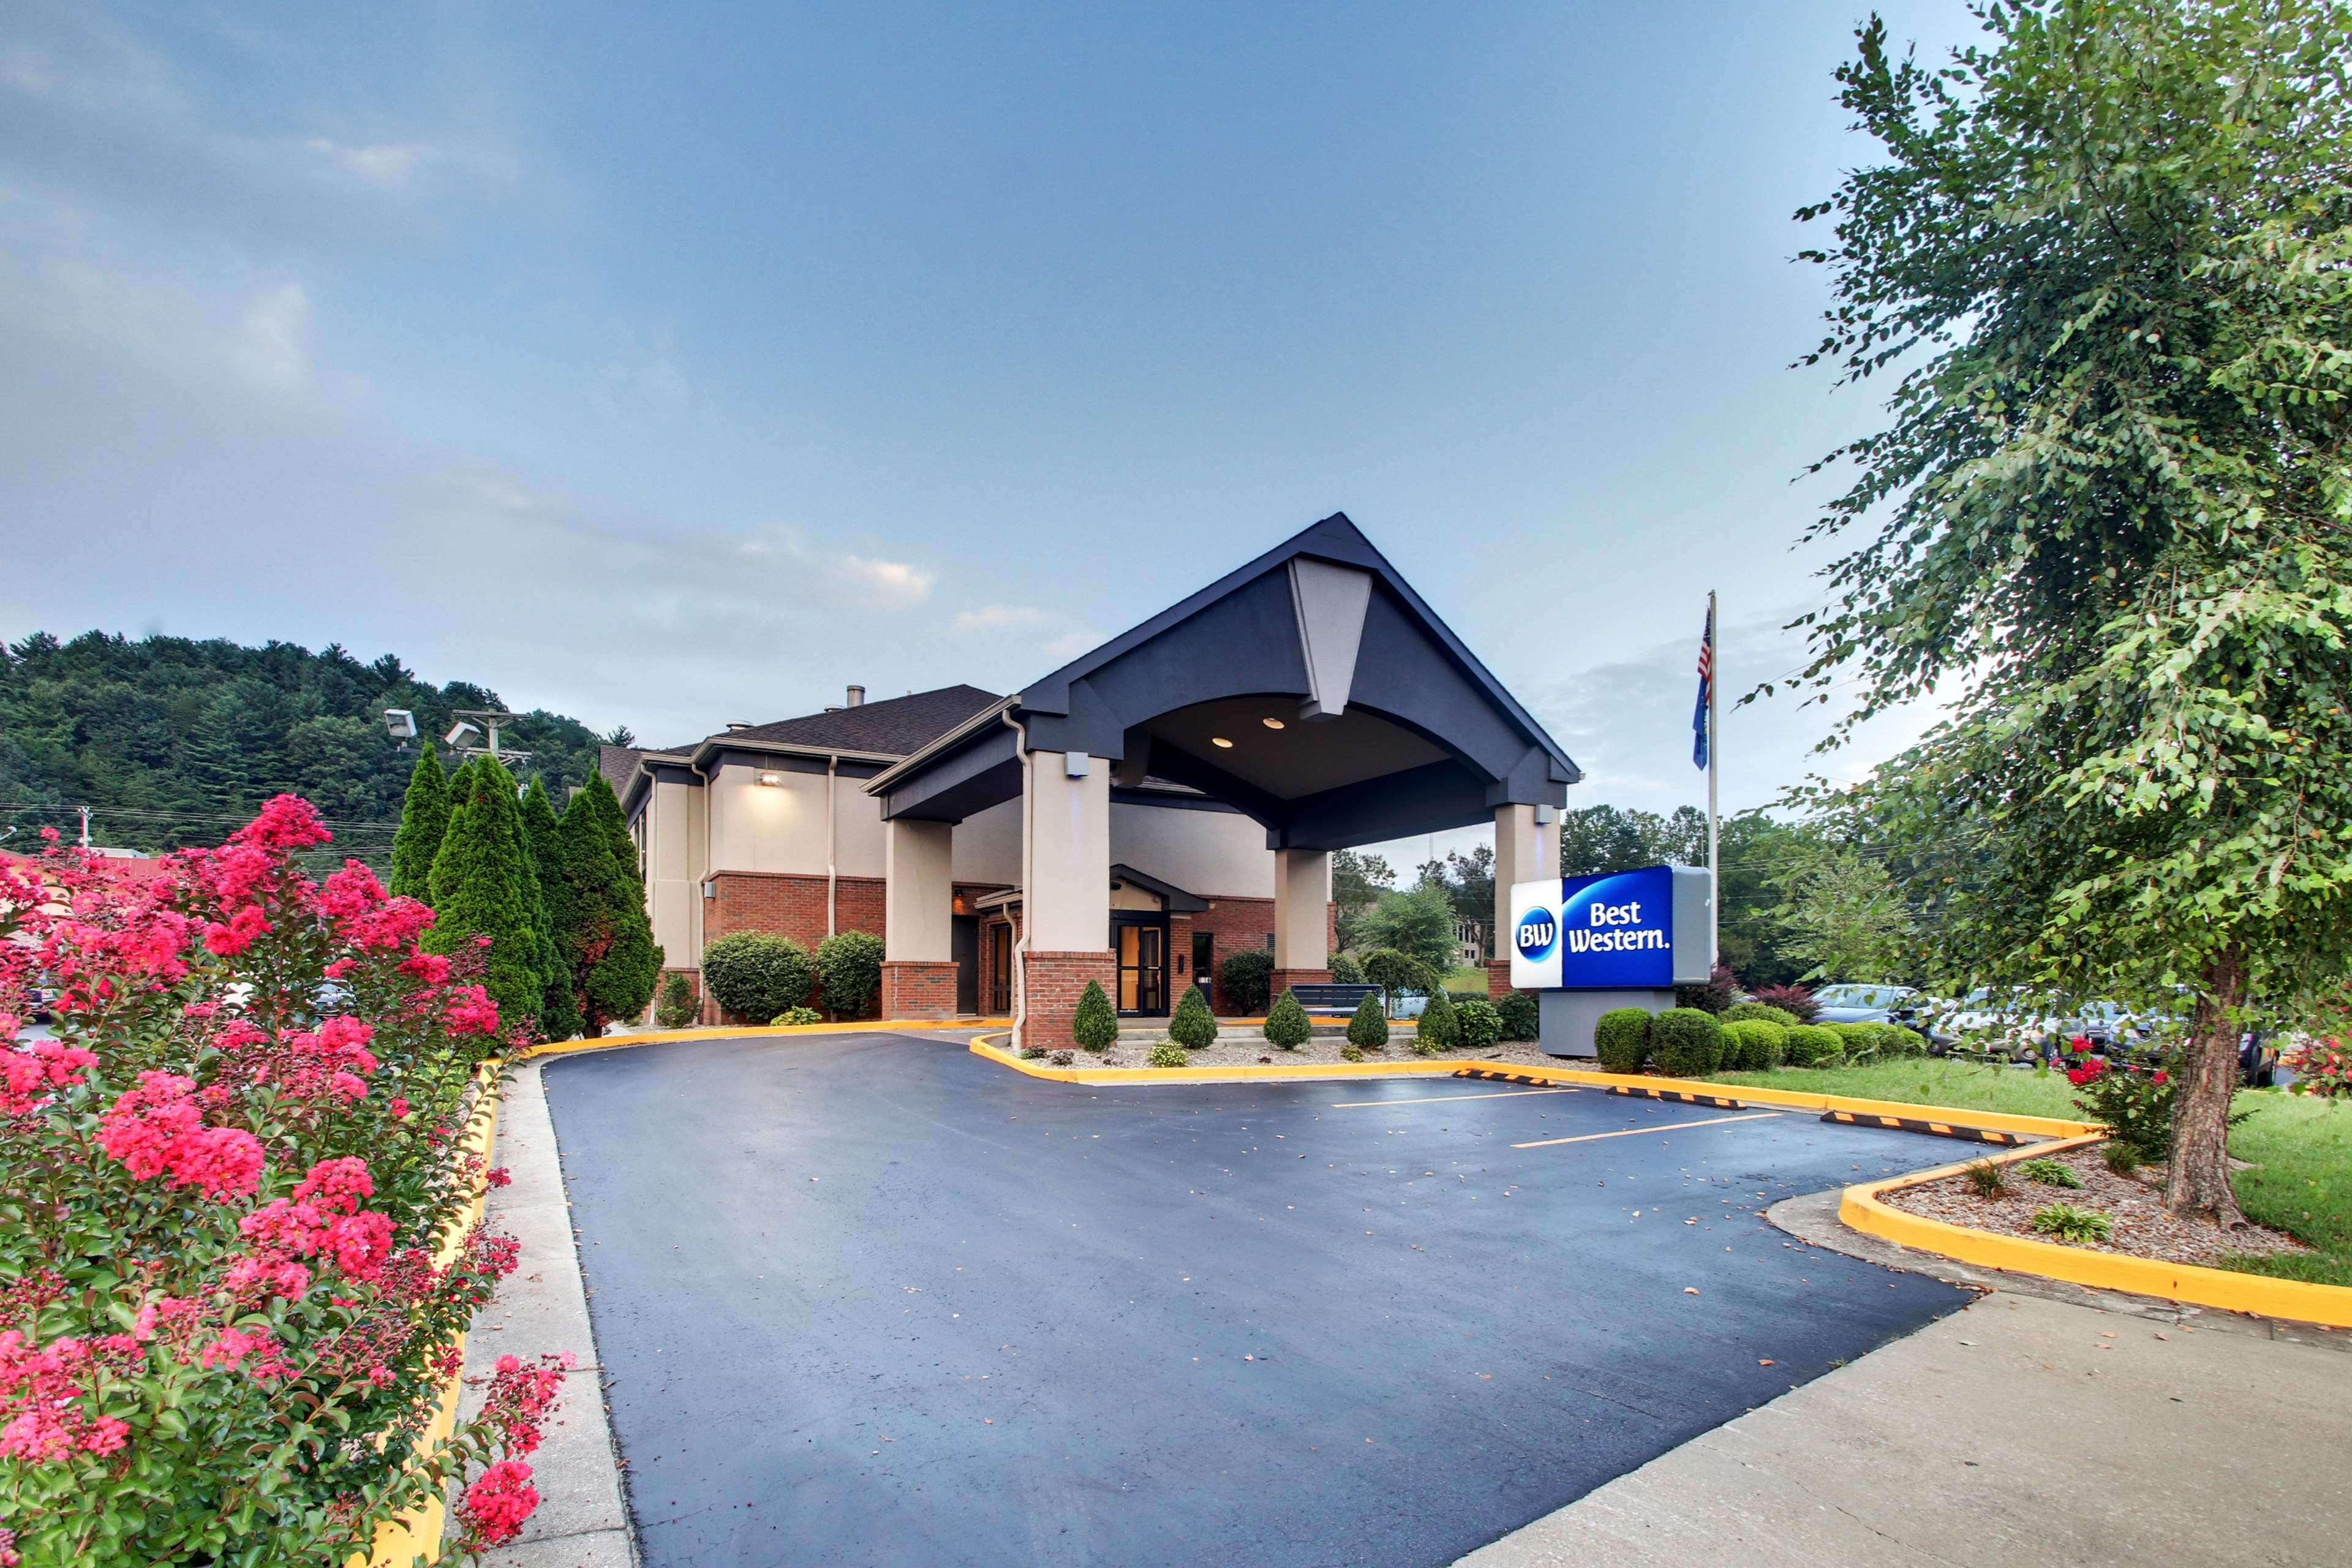 Best Western Eagles Inn image 2